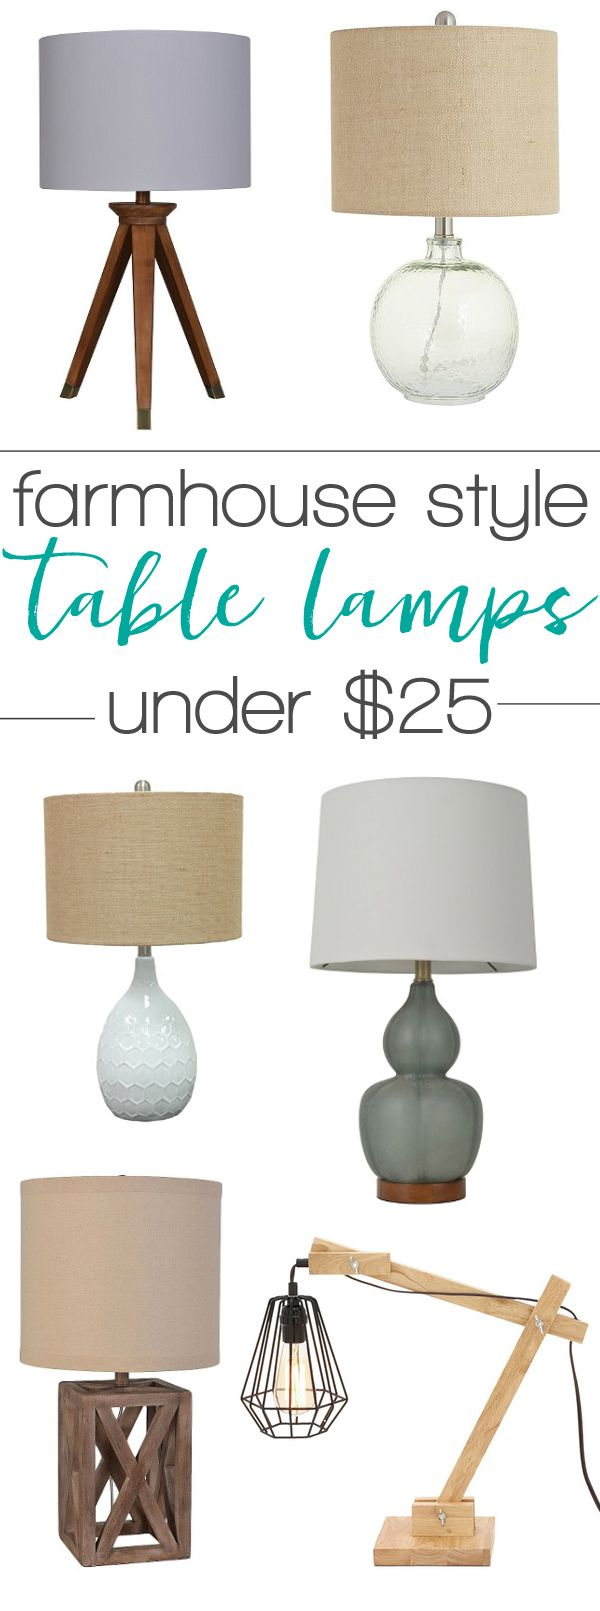 Teal lamp shades table lamps style light design most decorative - Teal Lamp Shades Table Lamps Style Light Design Most Decorative Farmhouse Style Lamps Under 50 Download